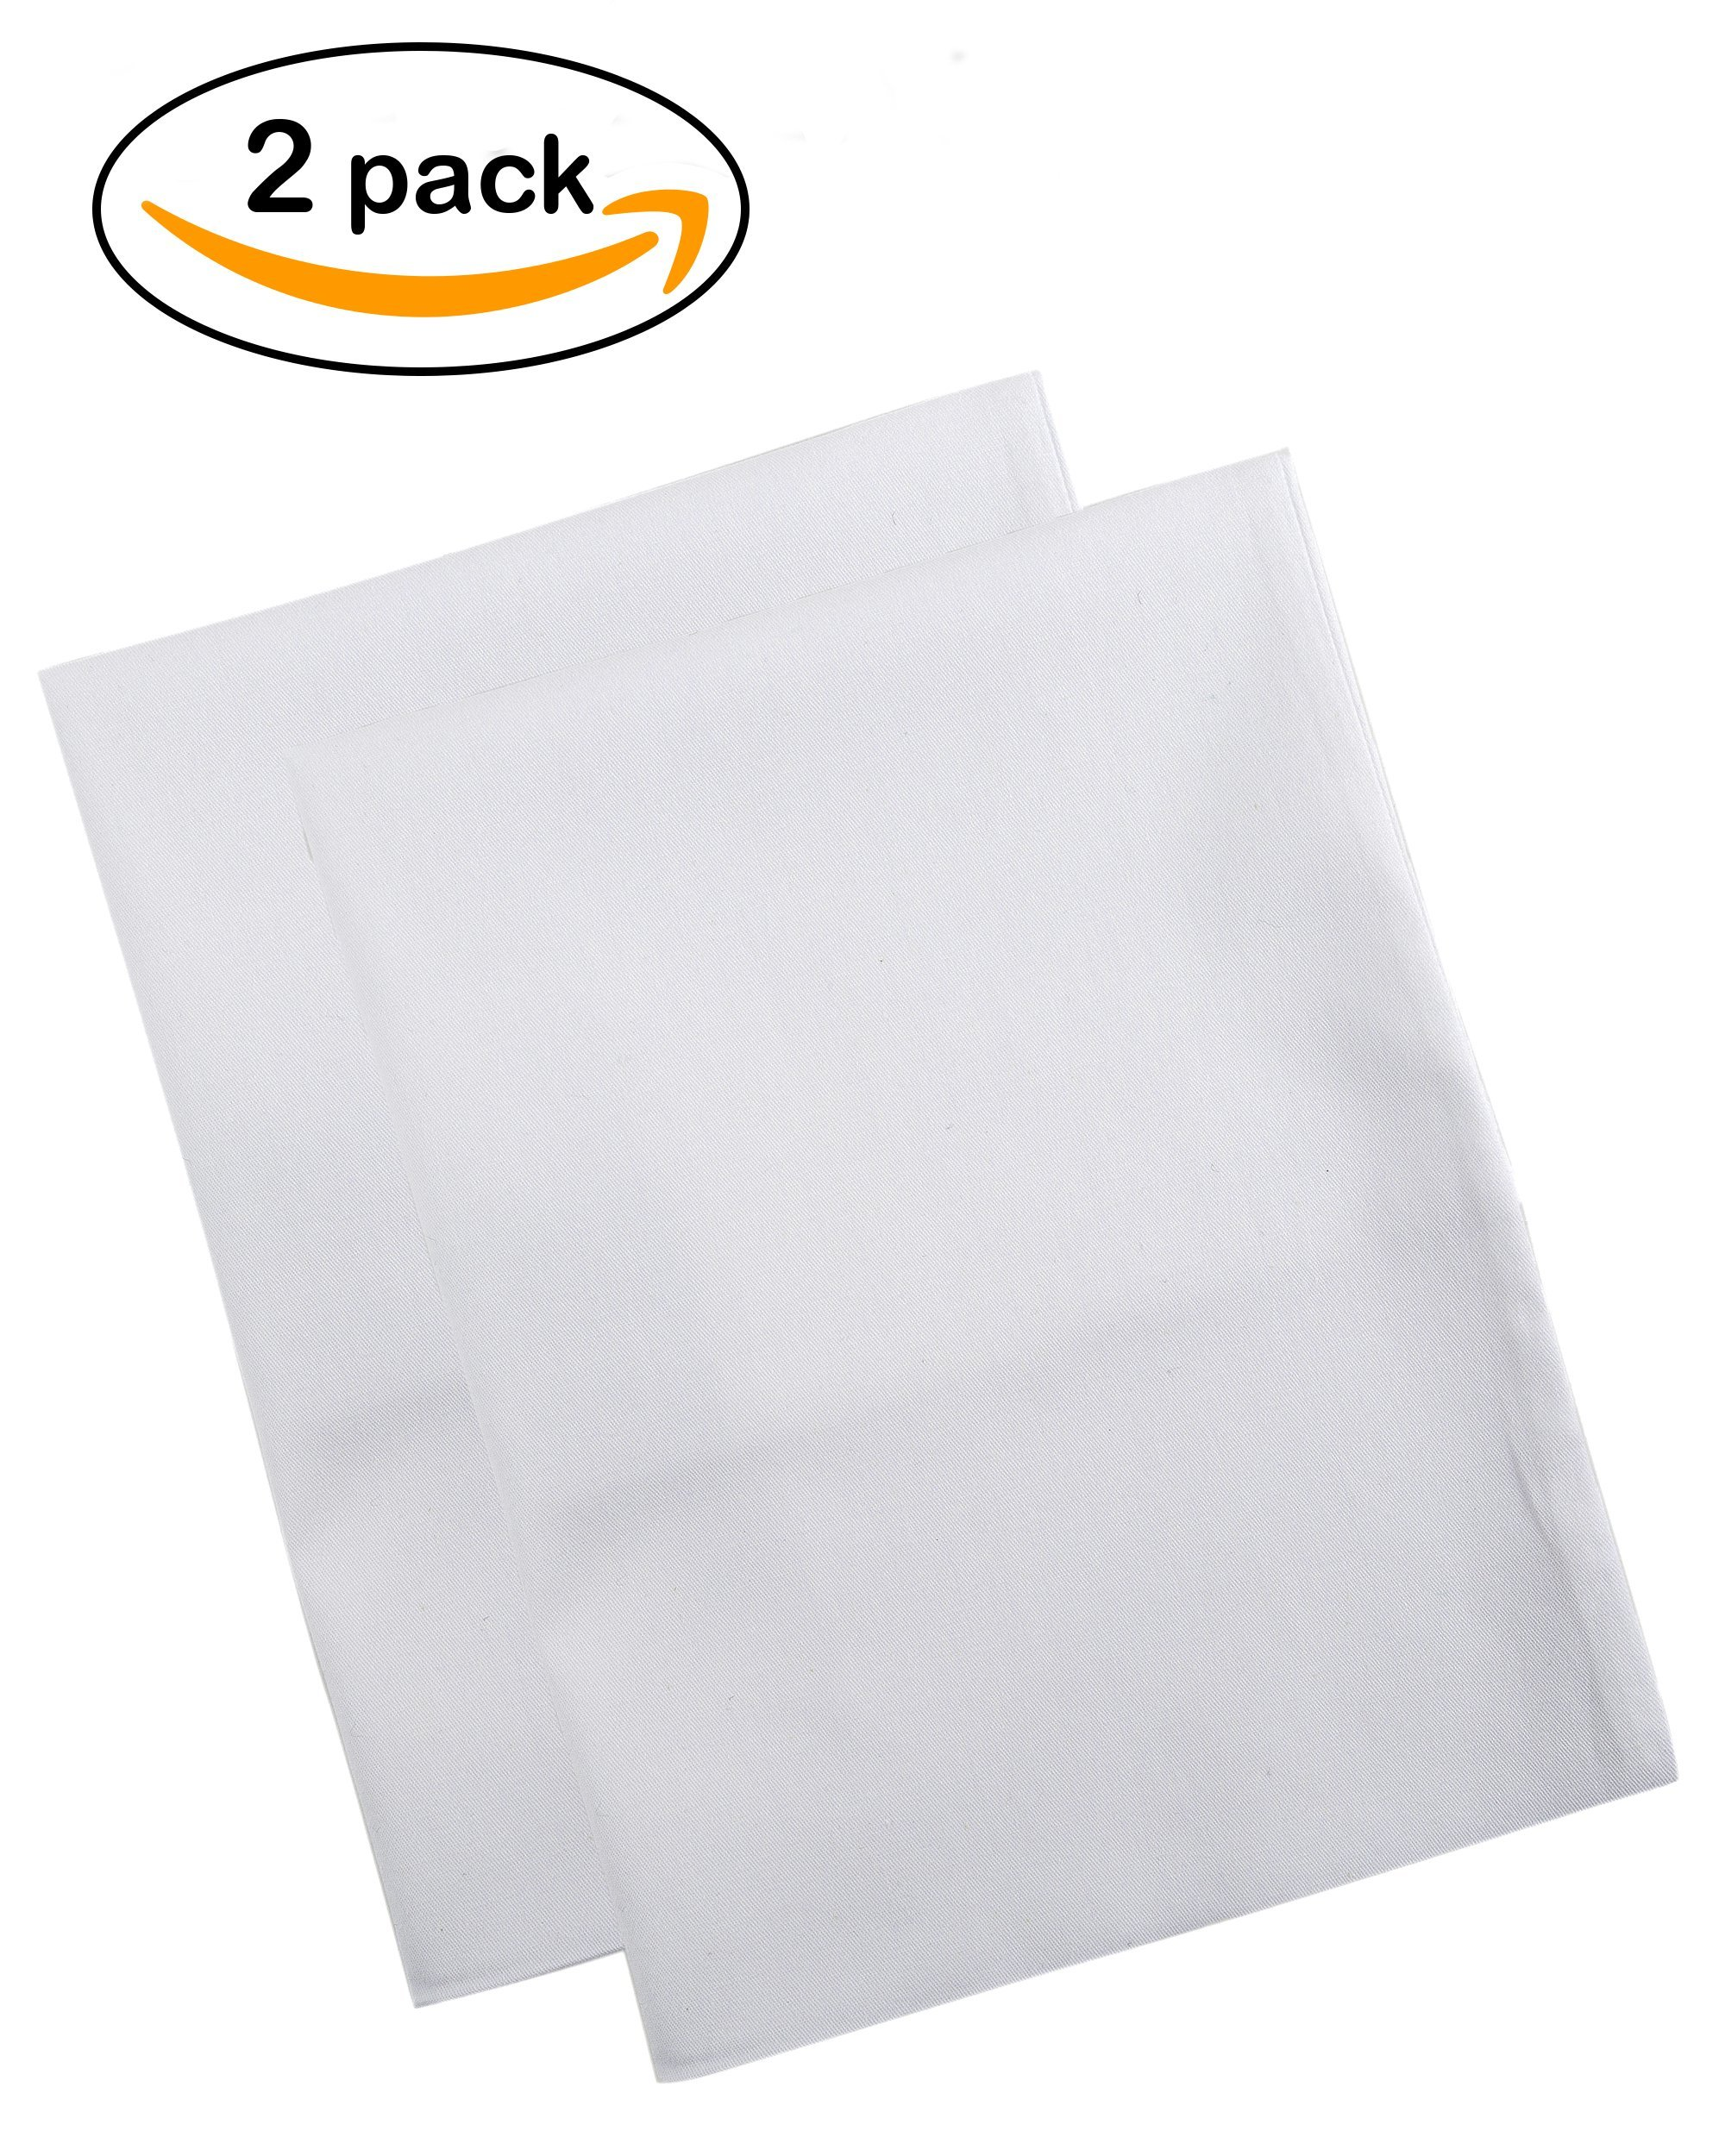 BB MY BEST BUDDY Toddler Pillowcase - White - Two pack - 100% twill cotton - 13x18 Shrinks to fit - Envelope Style Closure